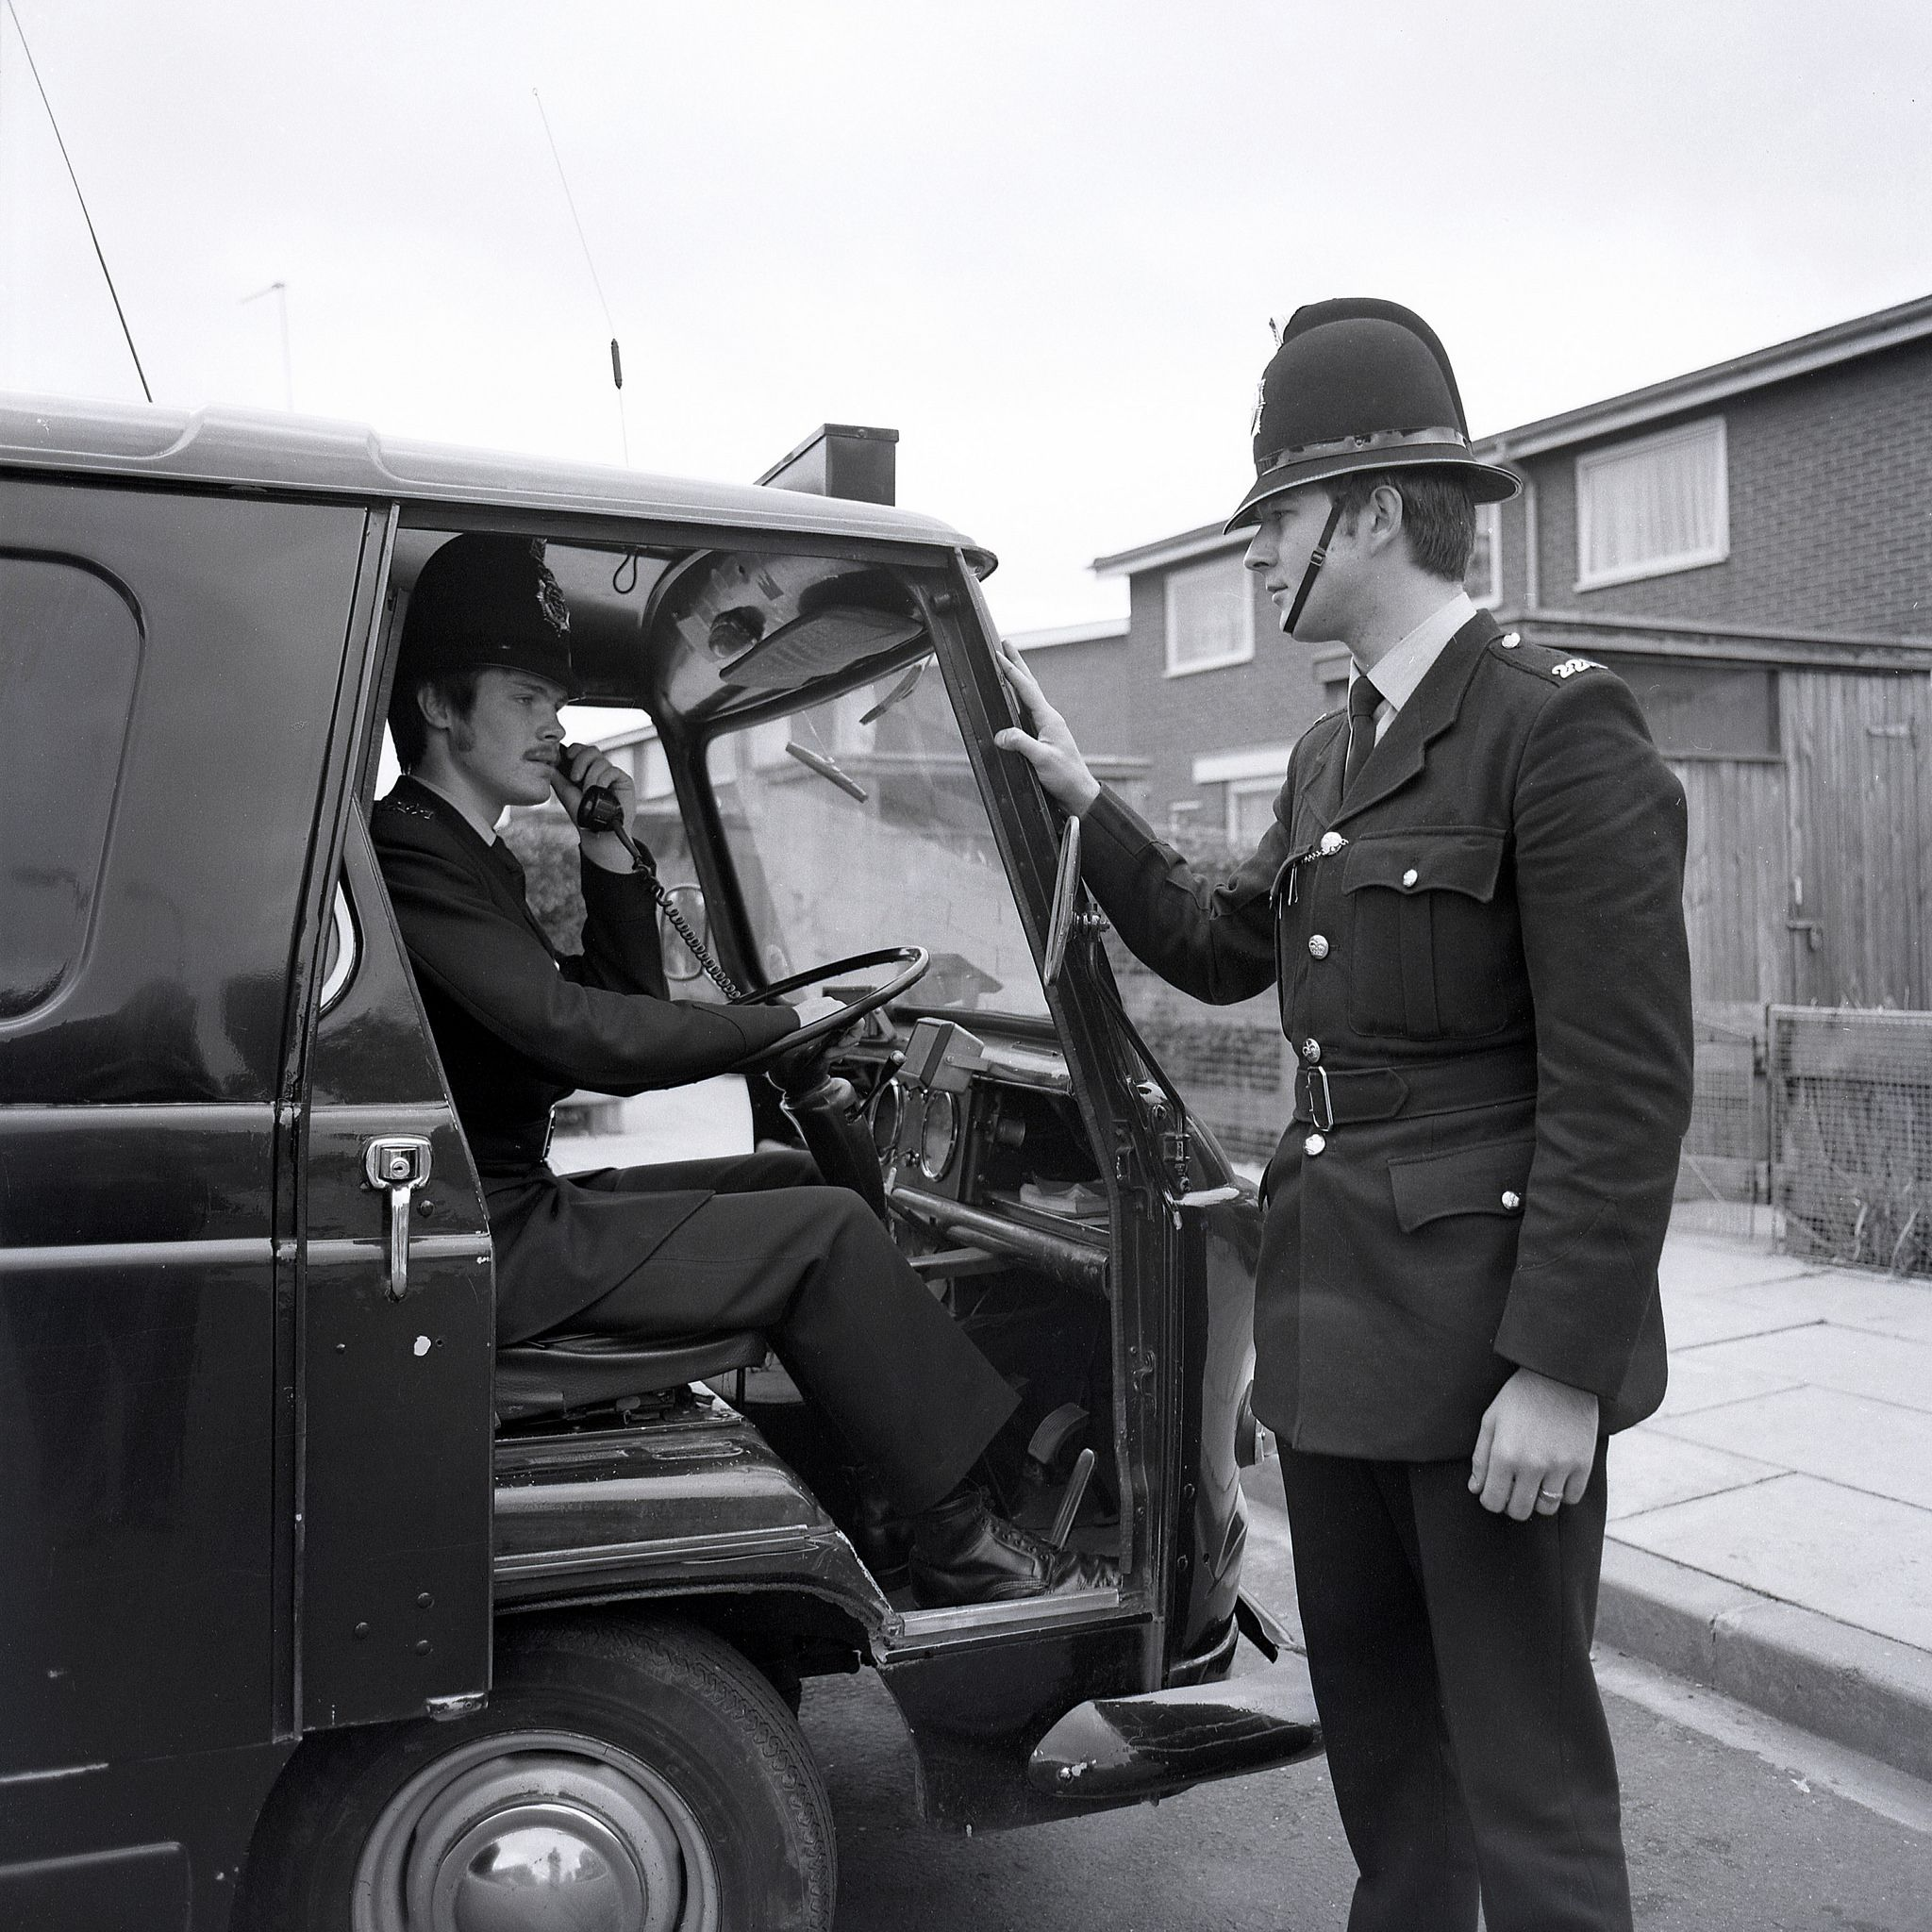 Police History - From Our